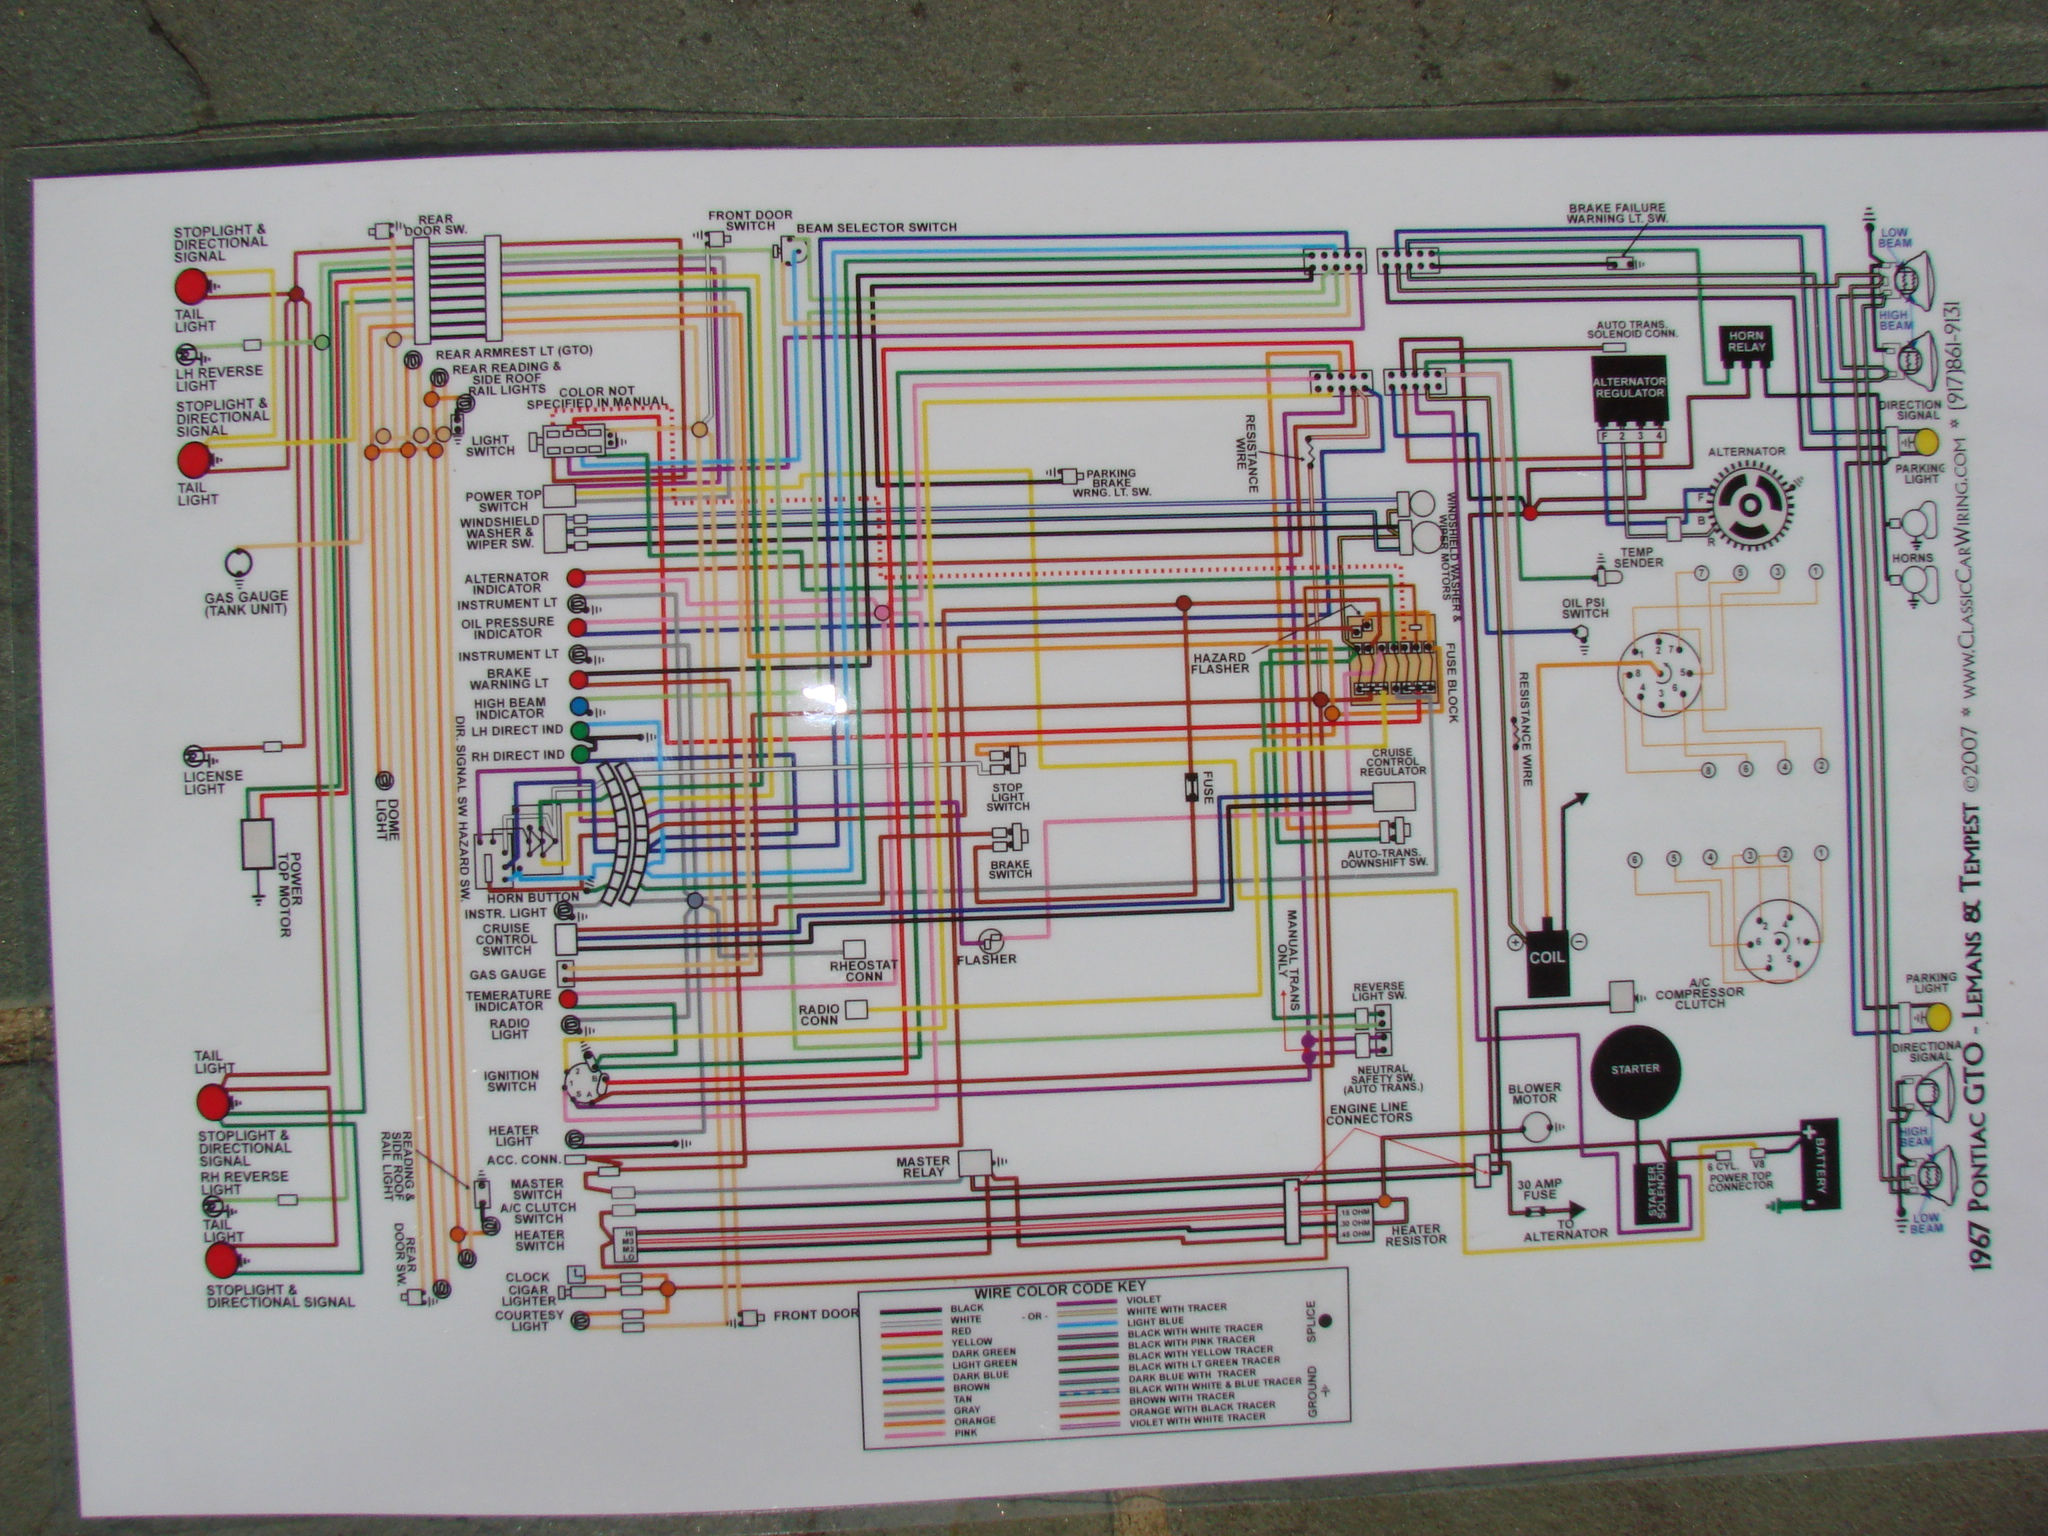 1967 Gto Wiper Diagram Wiring Schematic Name 1971 Chevy 65 Schema Online Pontiac Interior